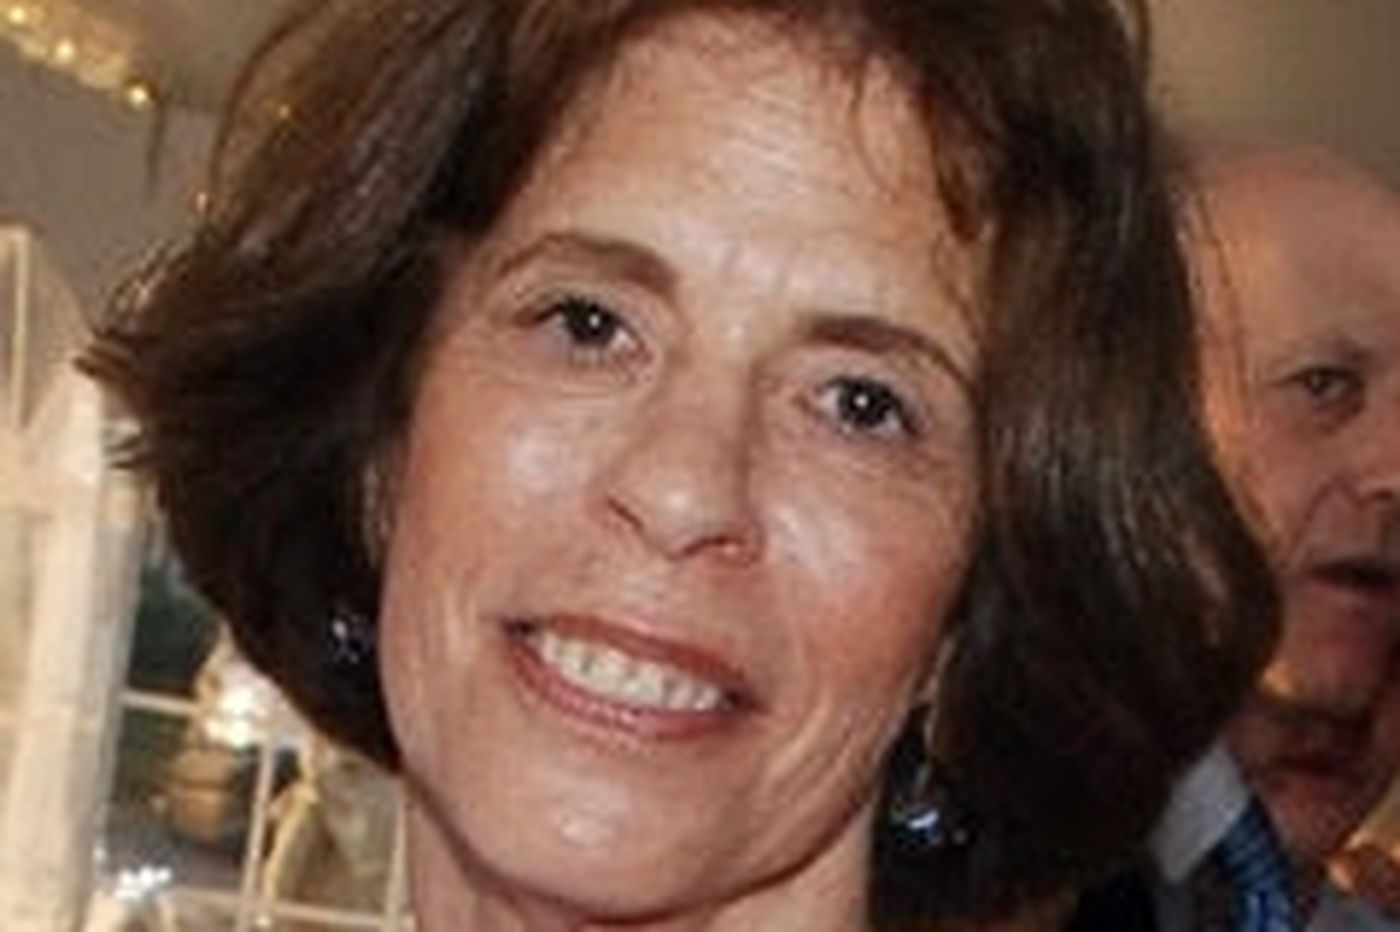 Diane S. Freedman, a Philadelphia-based career counselor for 35 years, dies at 77